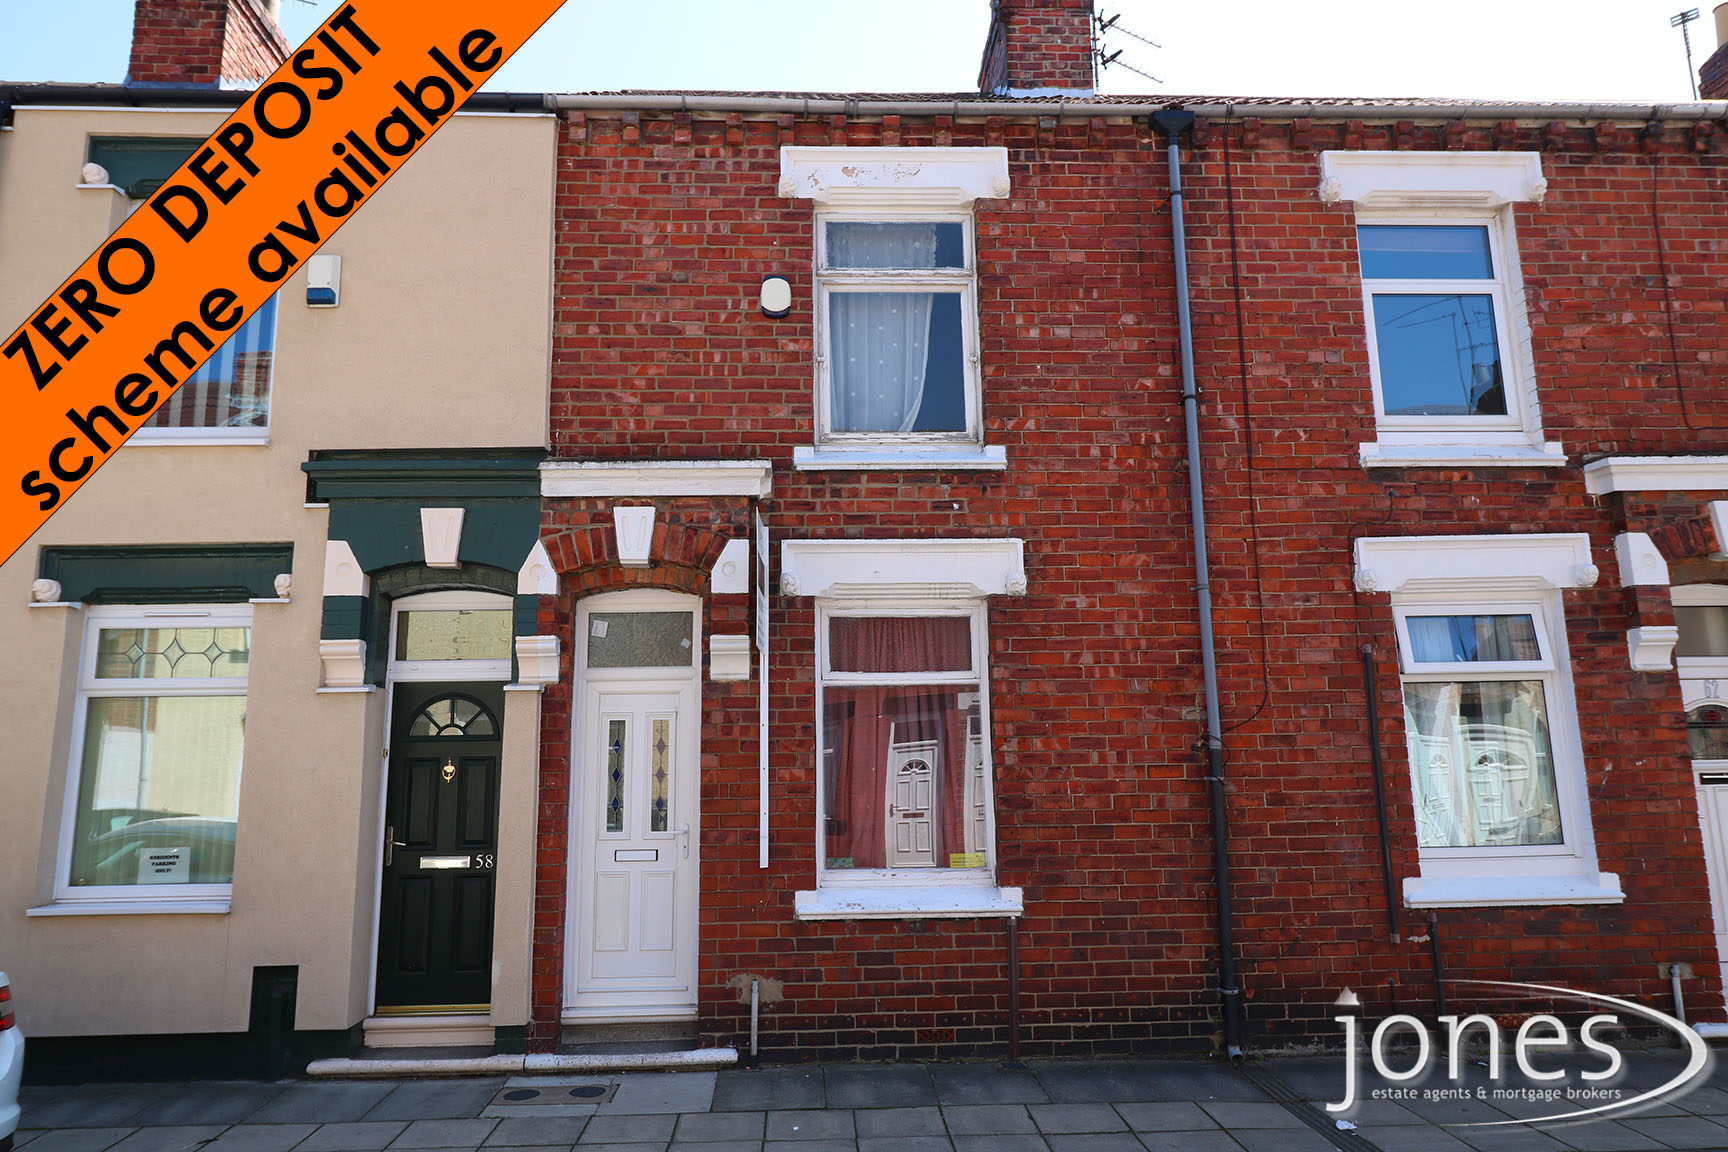 Home for Sale Let - Photo 01 Percy Street,  Middlesbrough, TS1 4DD